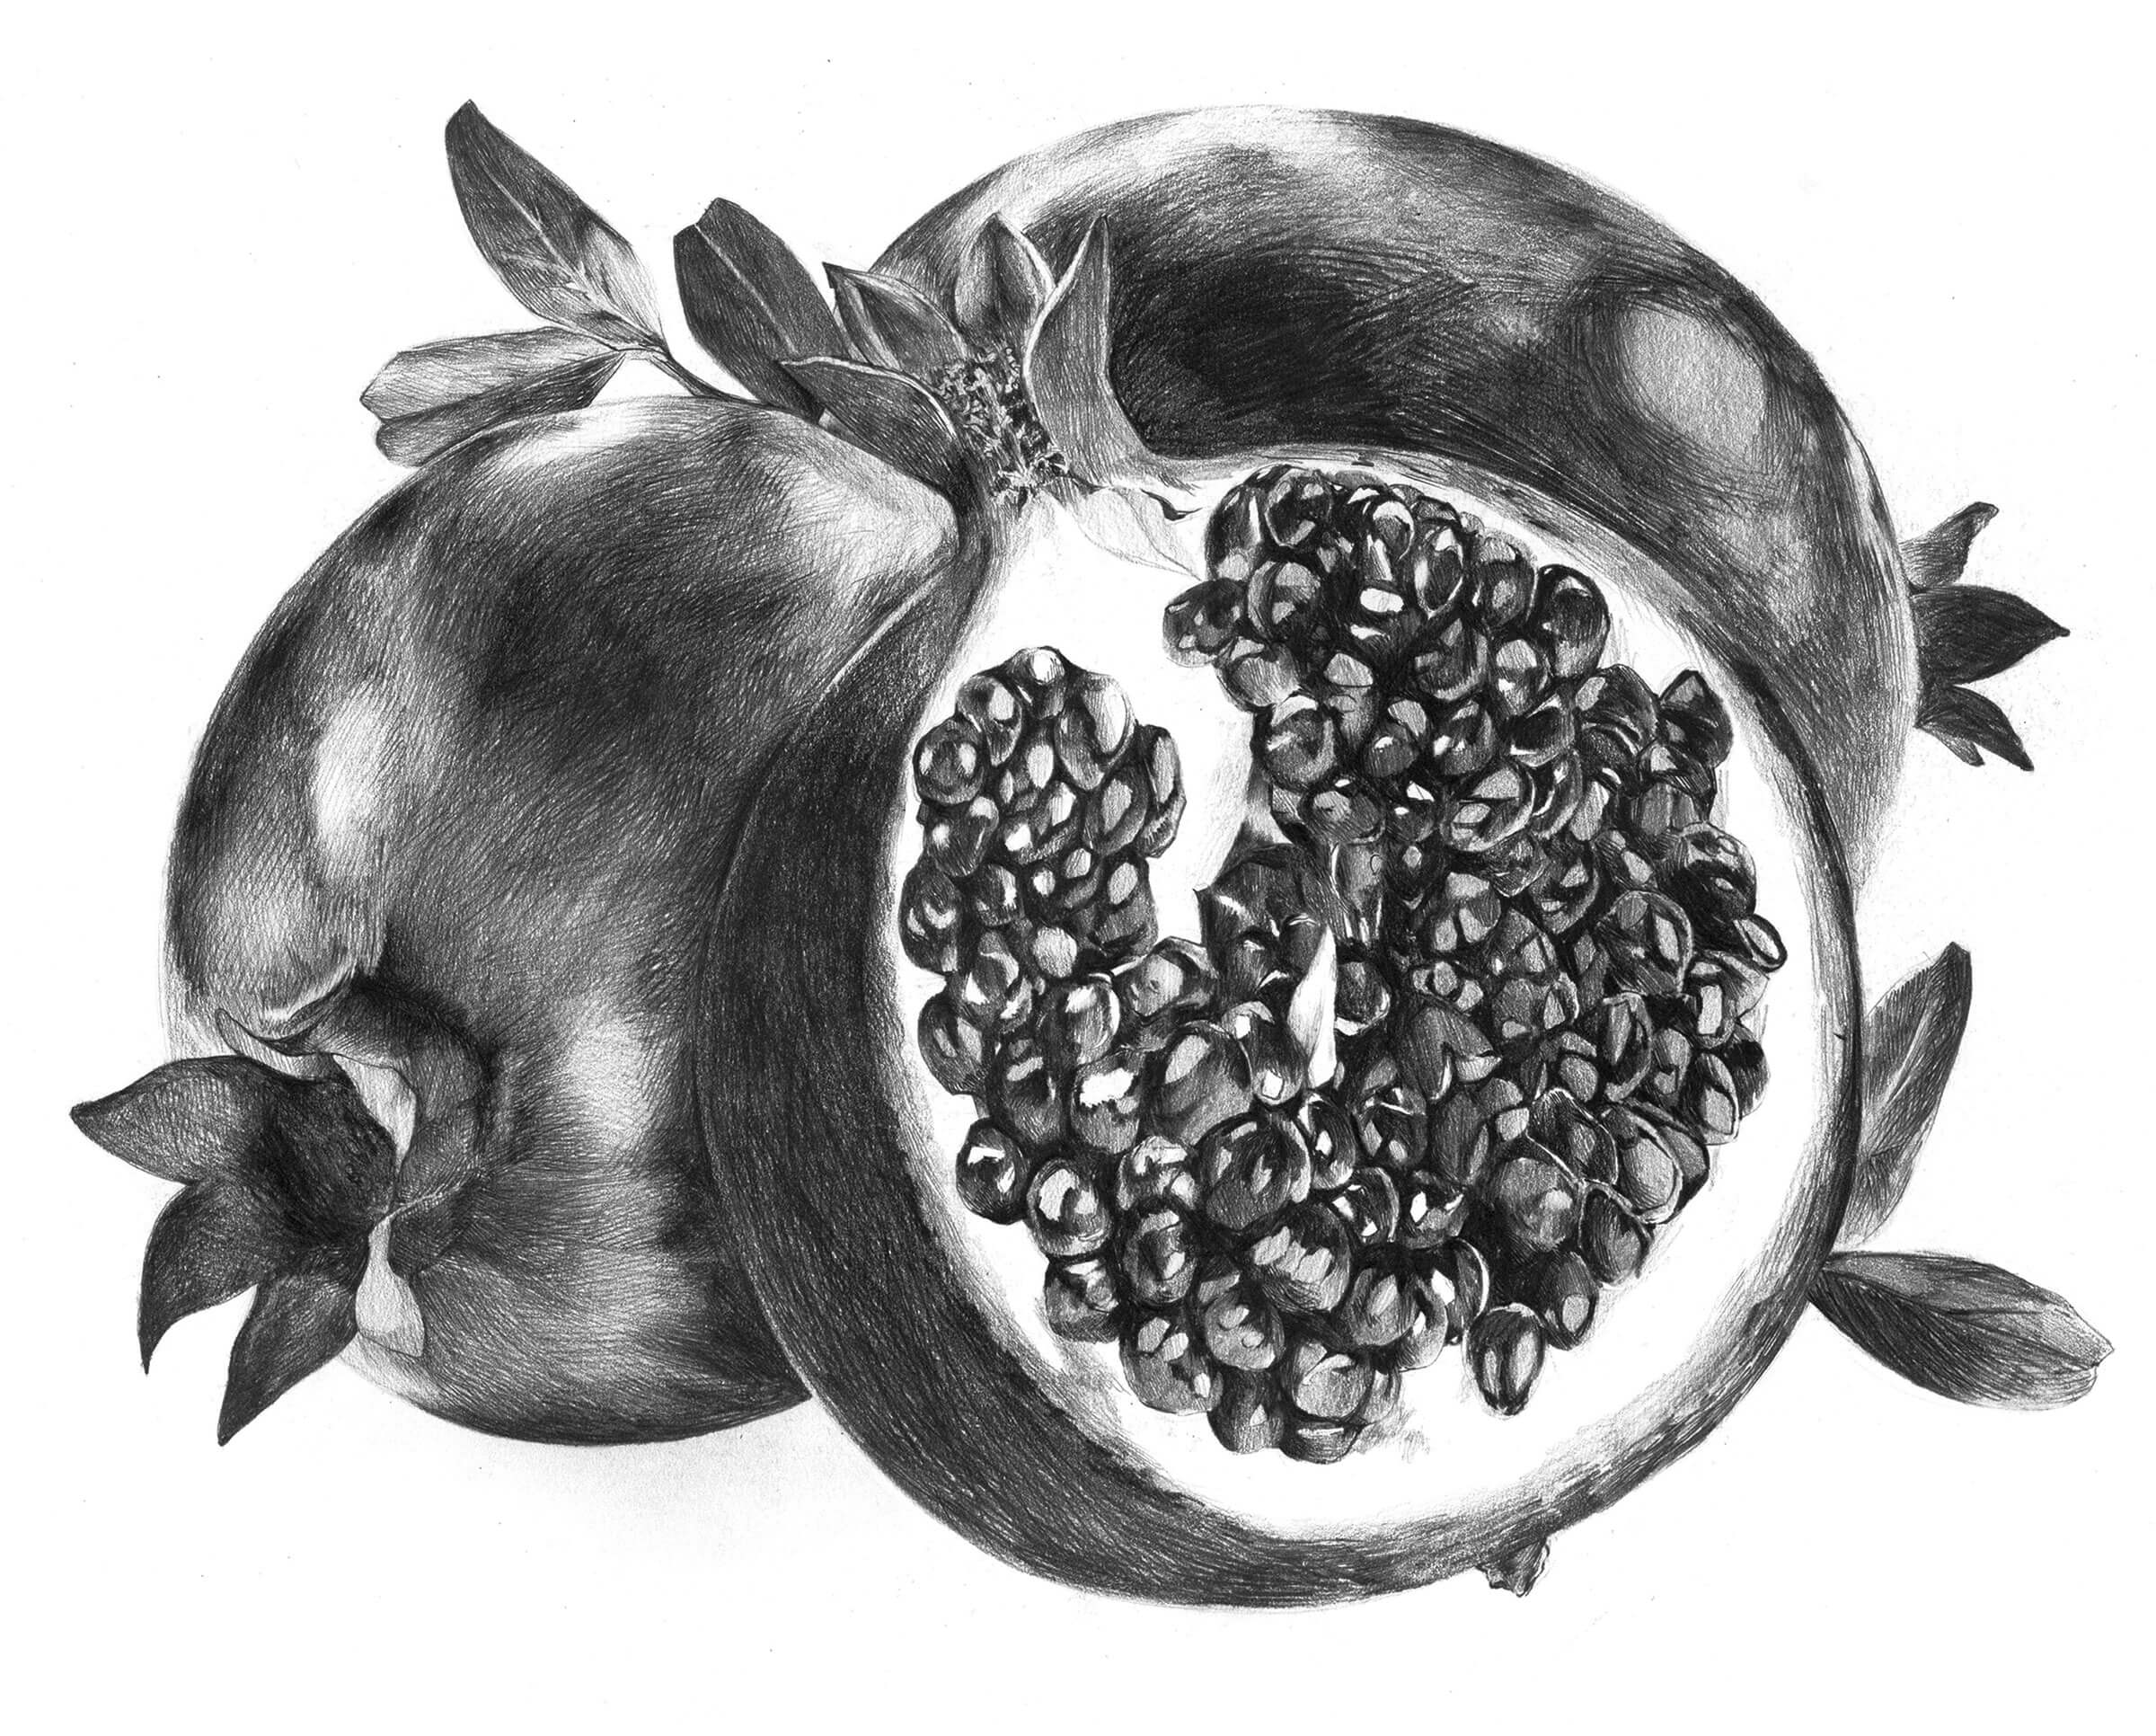 Black-and-white sketch of pomegranates, one of which is sliced in half.